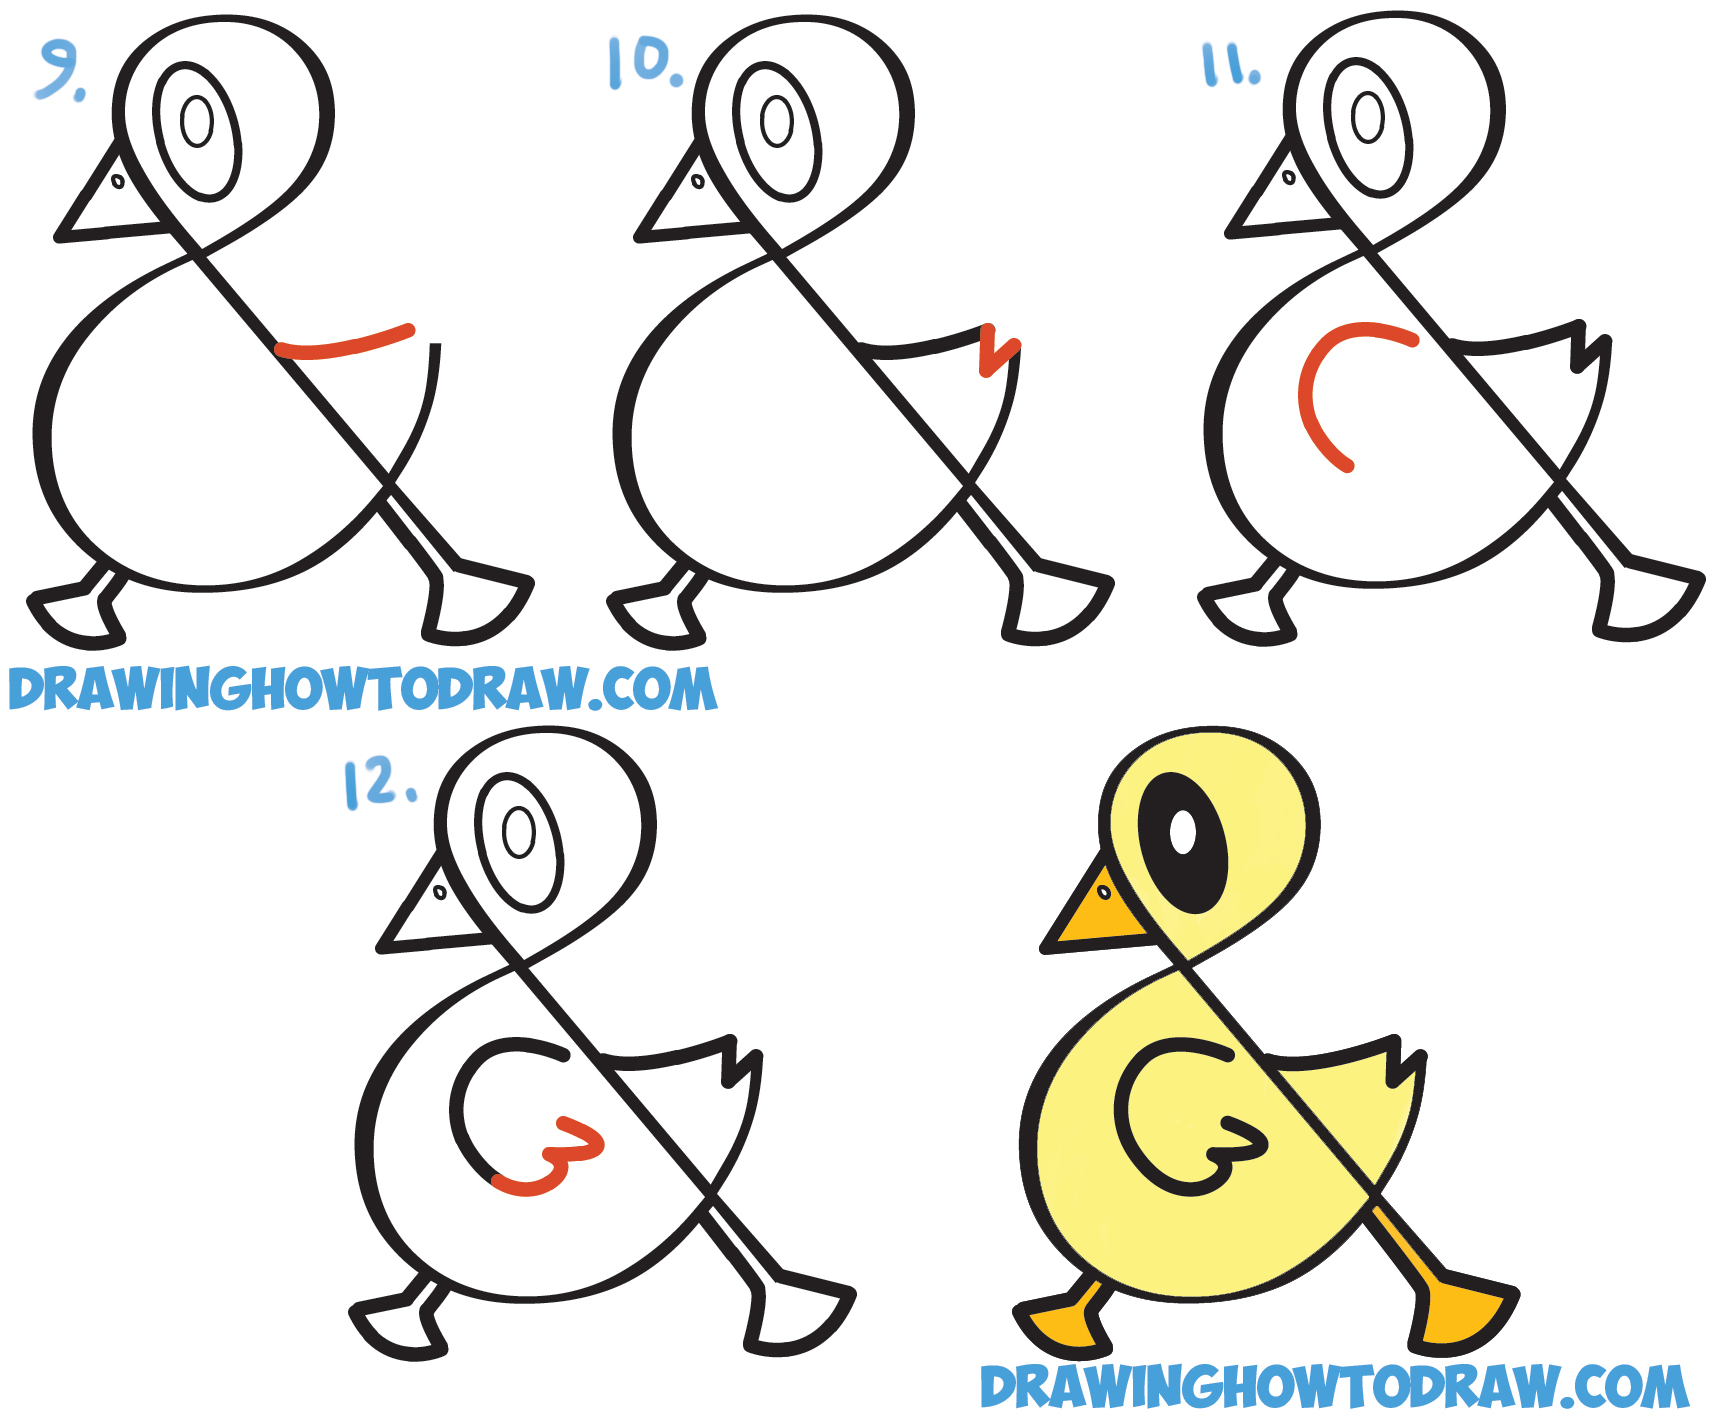 learn how to draw a cute cartoon duck from ampersand symbol letters numbers